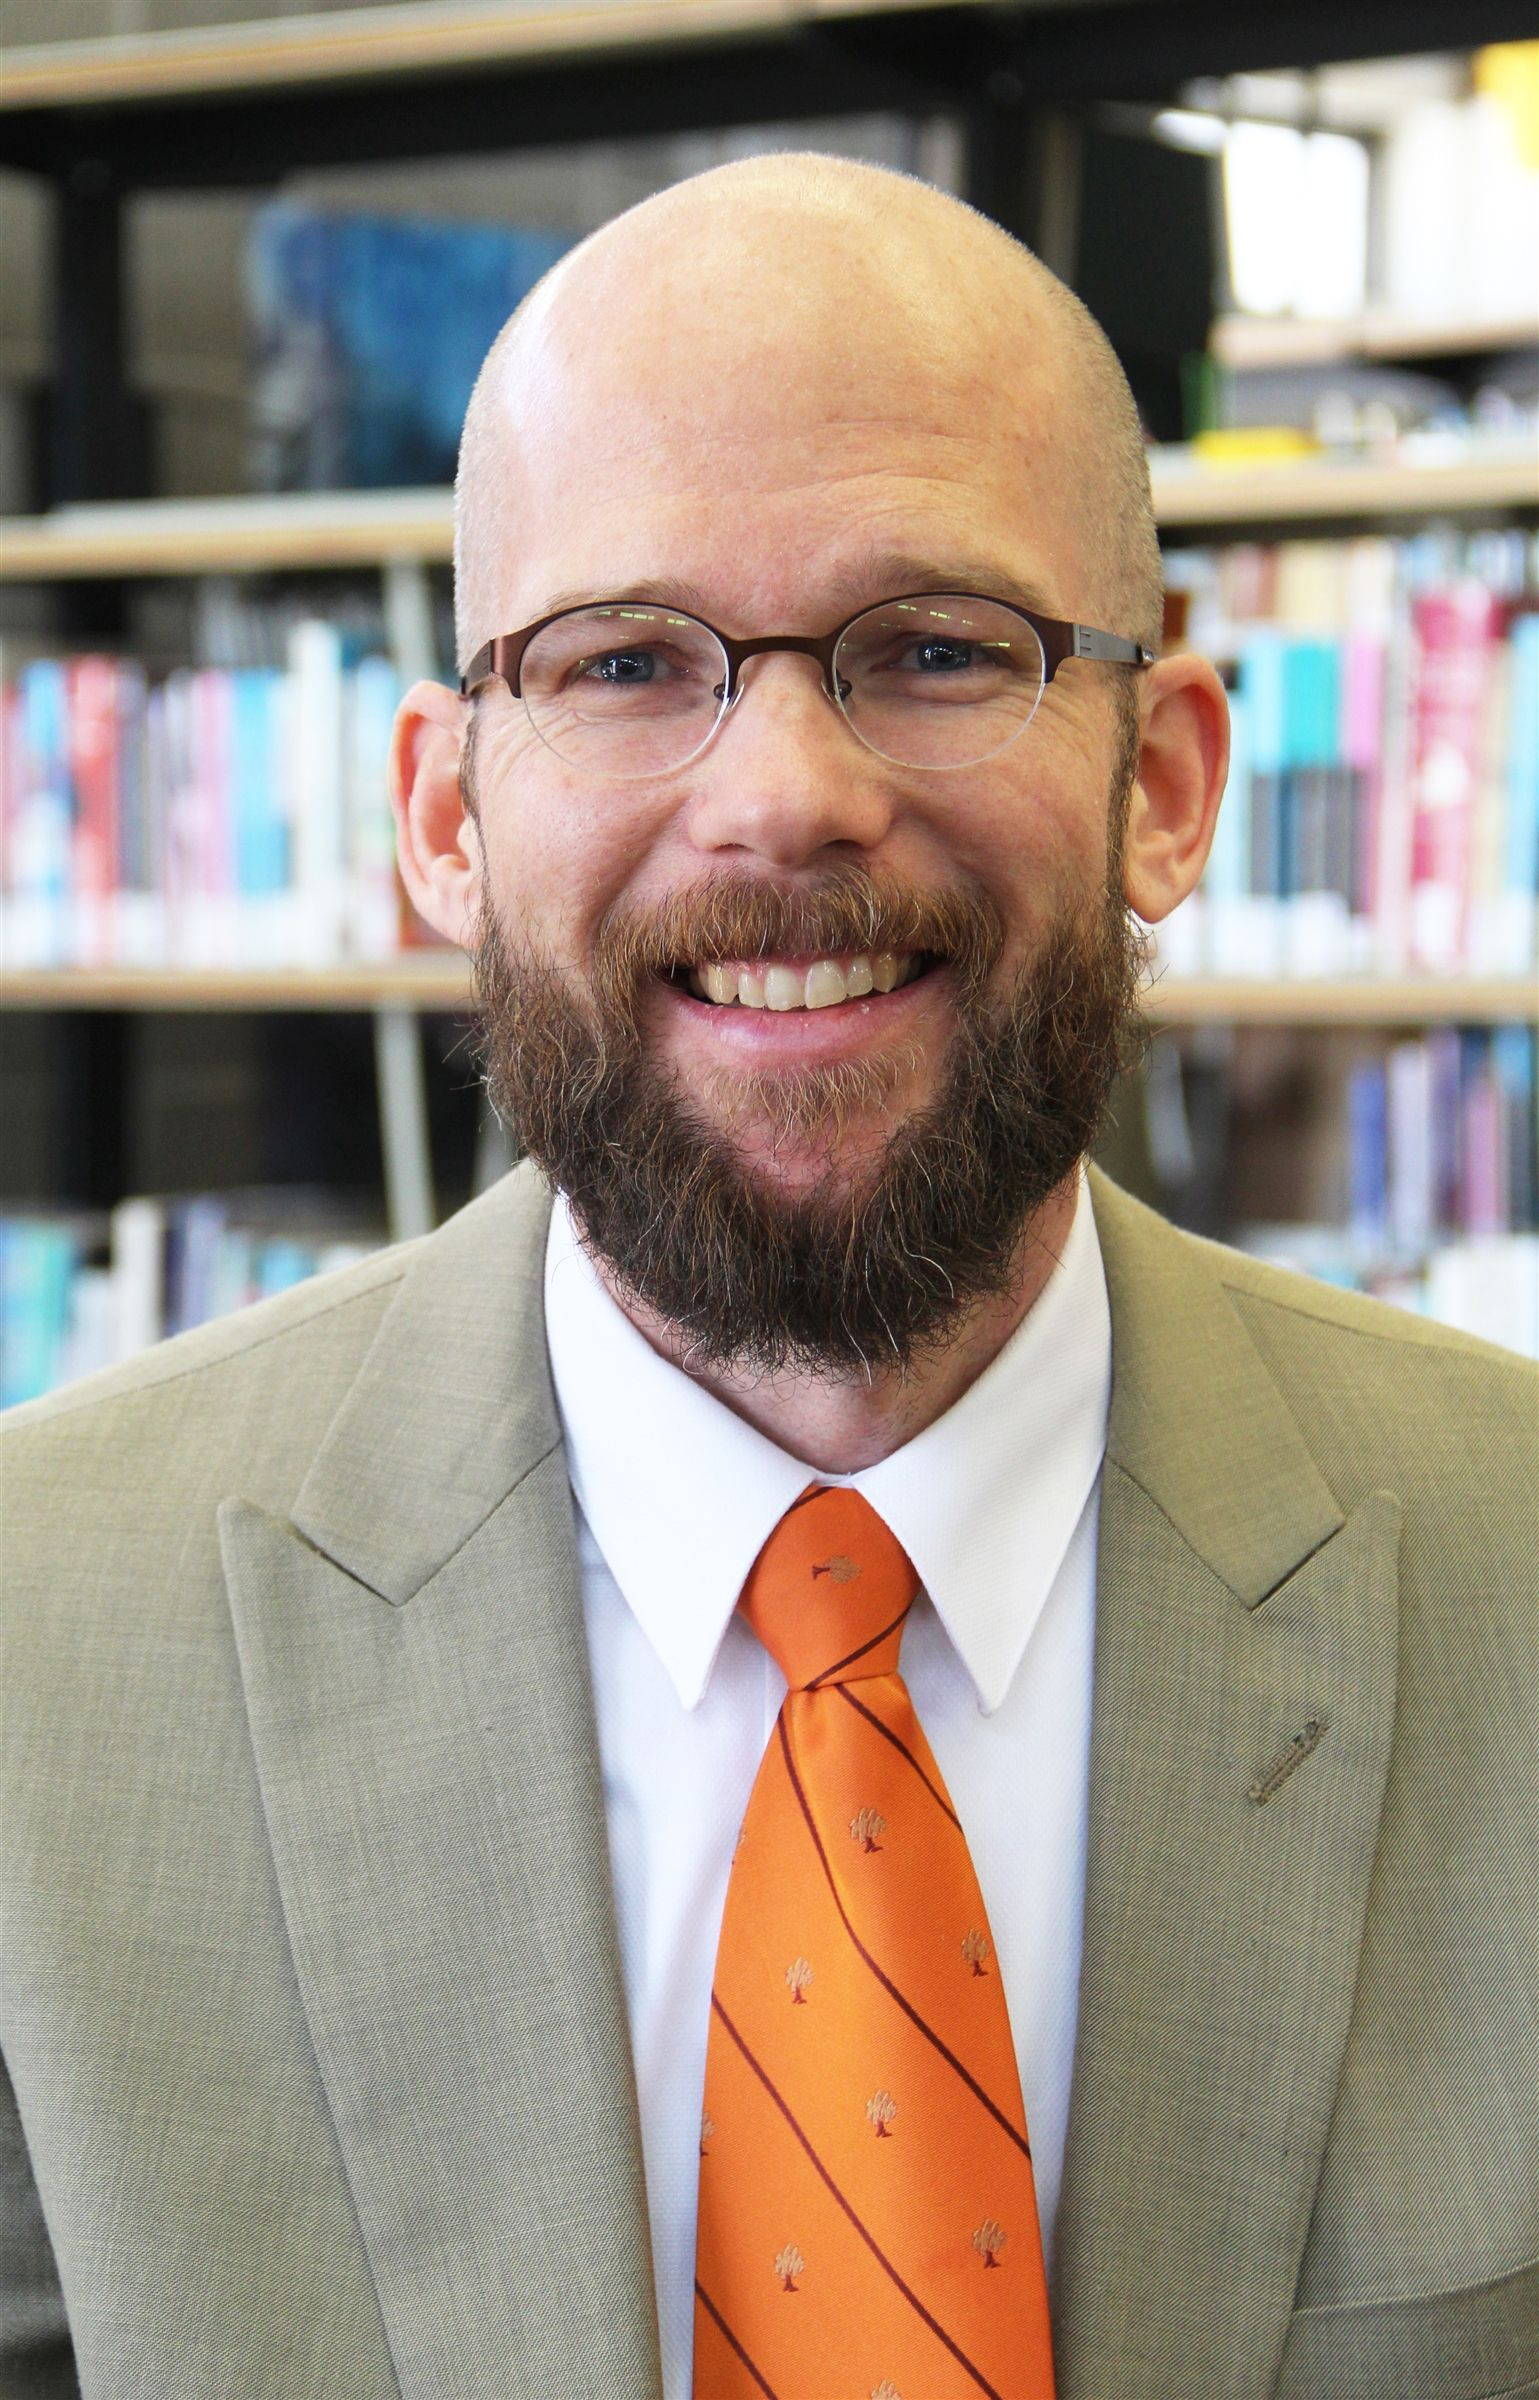 Head of School Jeremy Besch